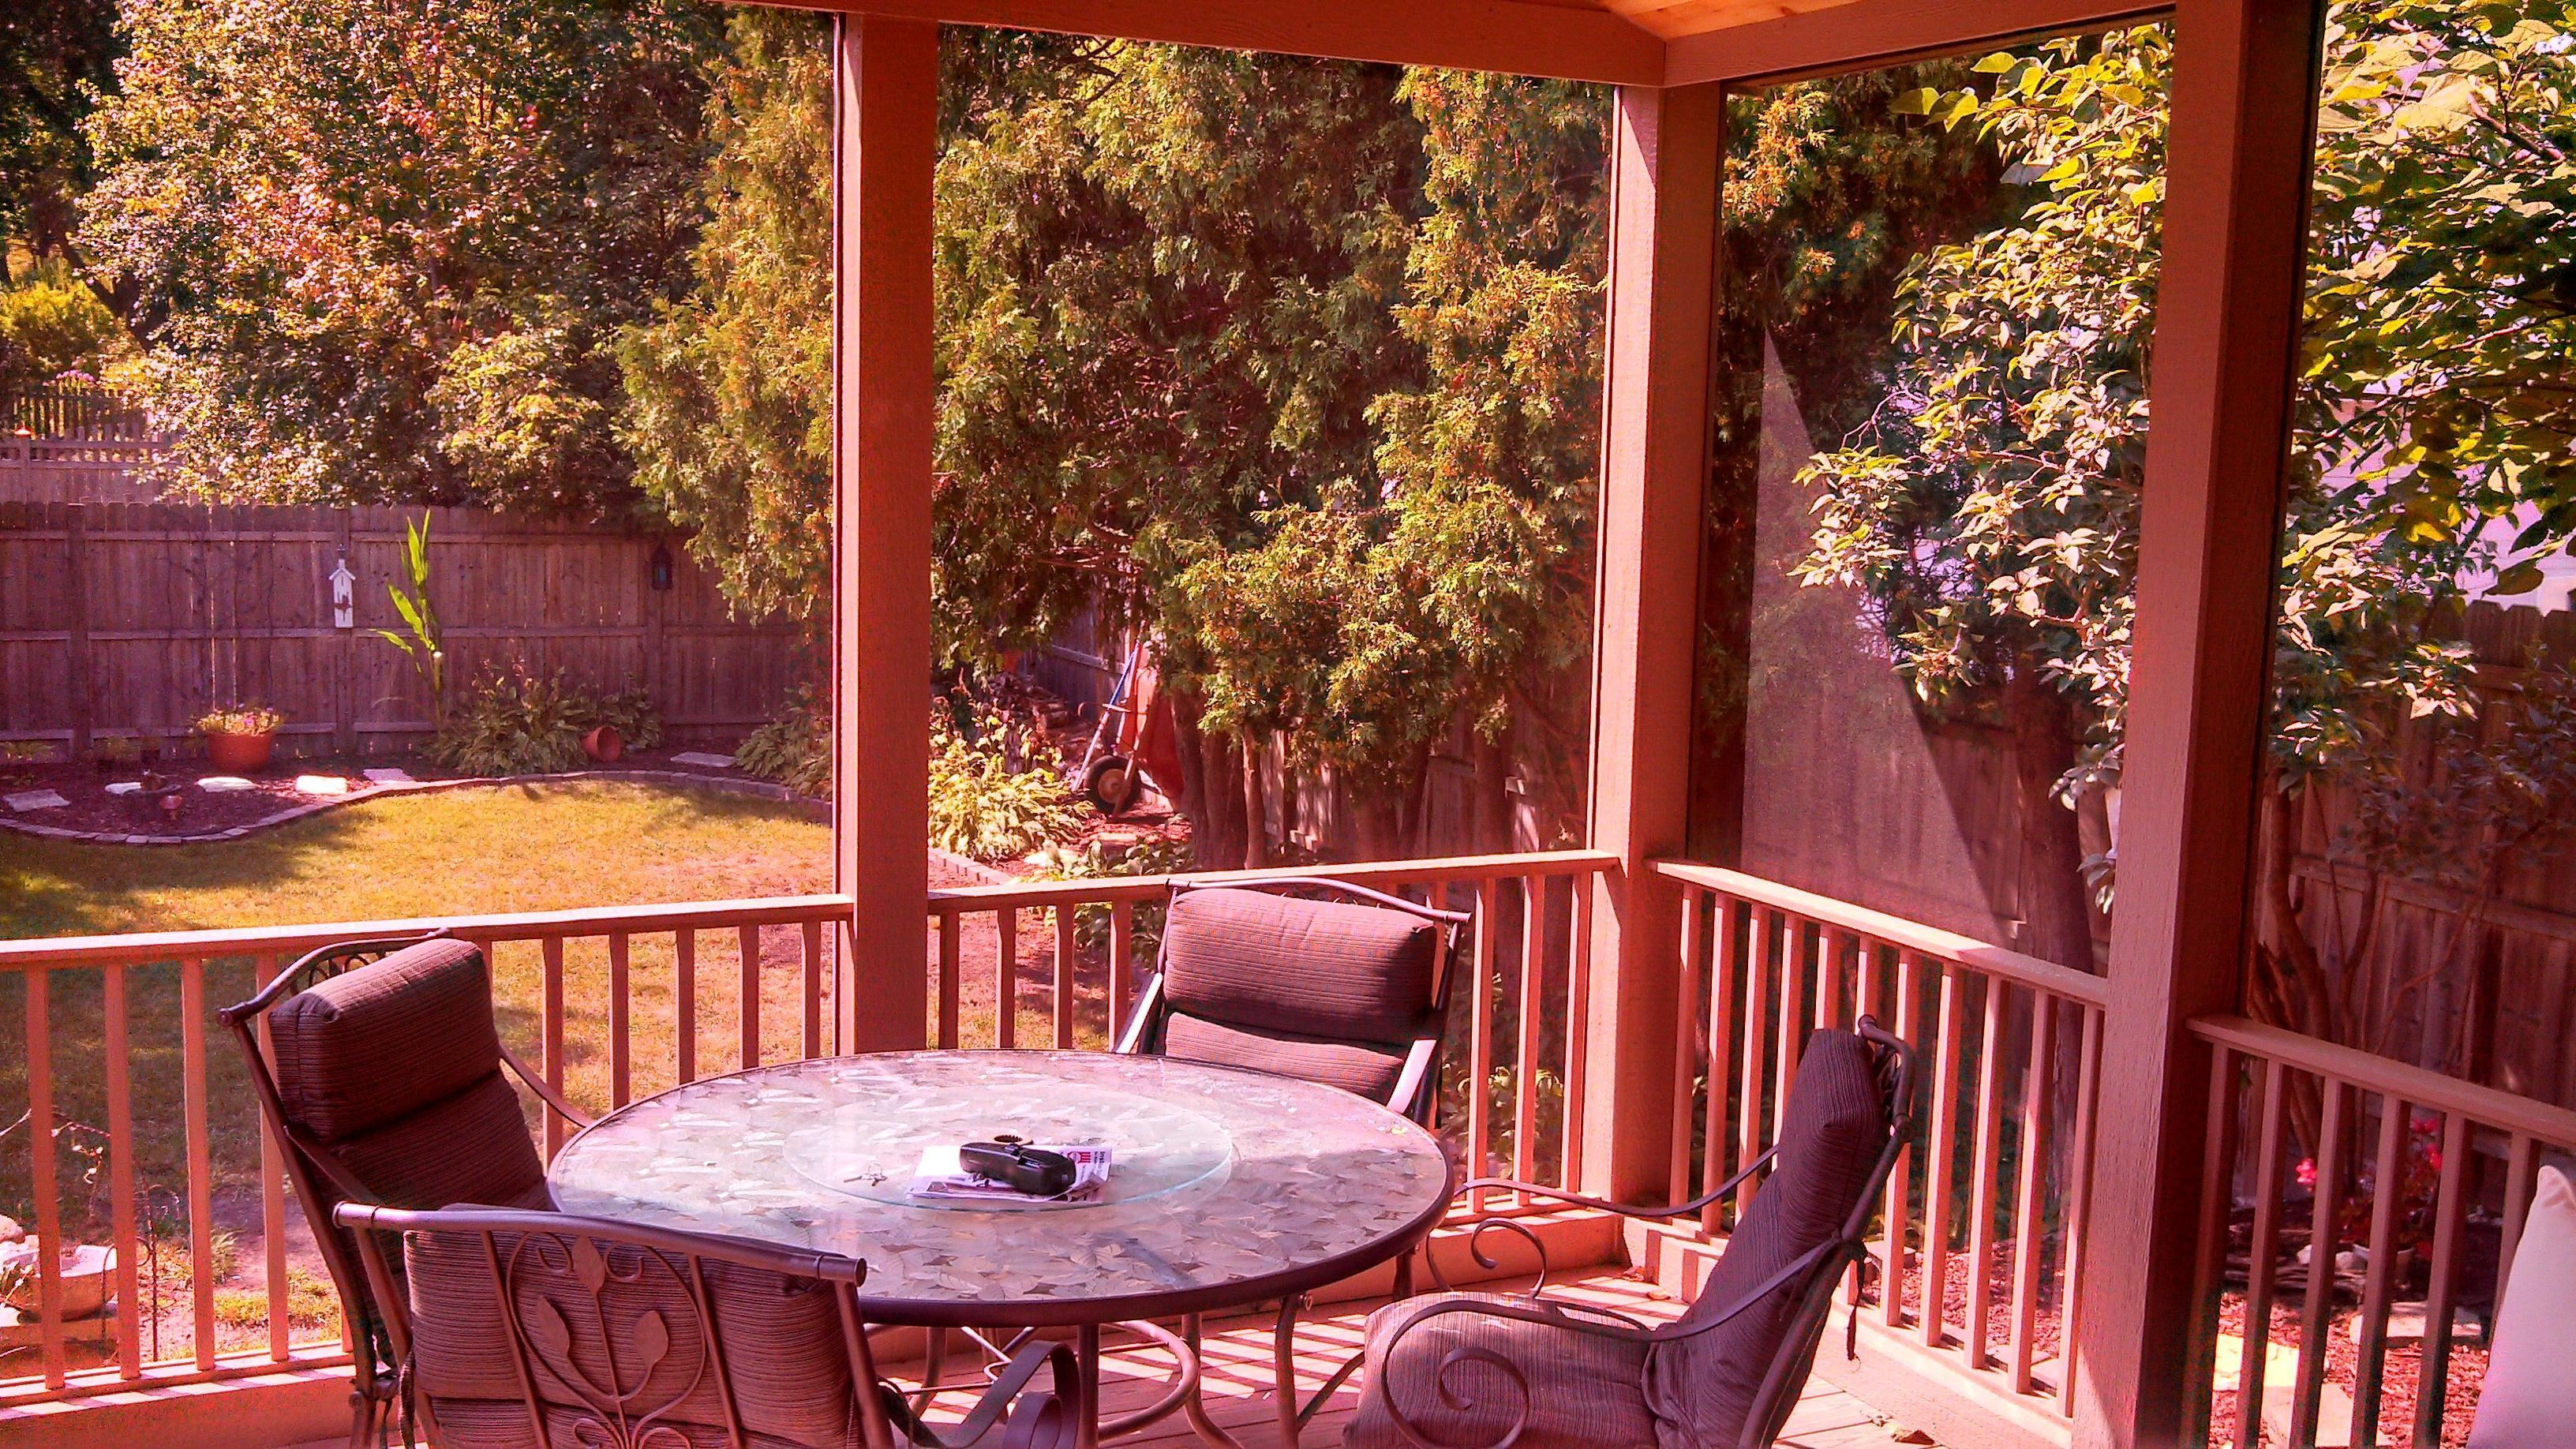 Overlook your back yard while enjoying the relaxing, bug-free fresh air!